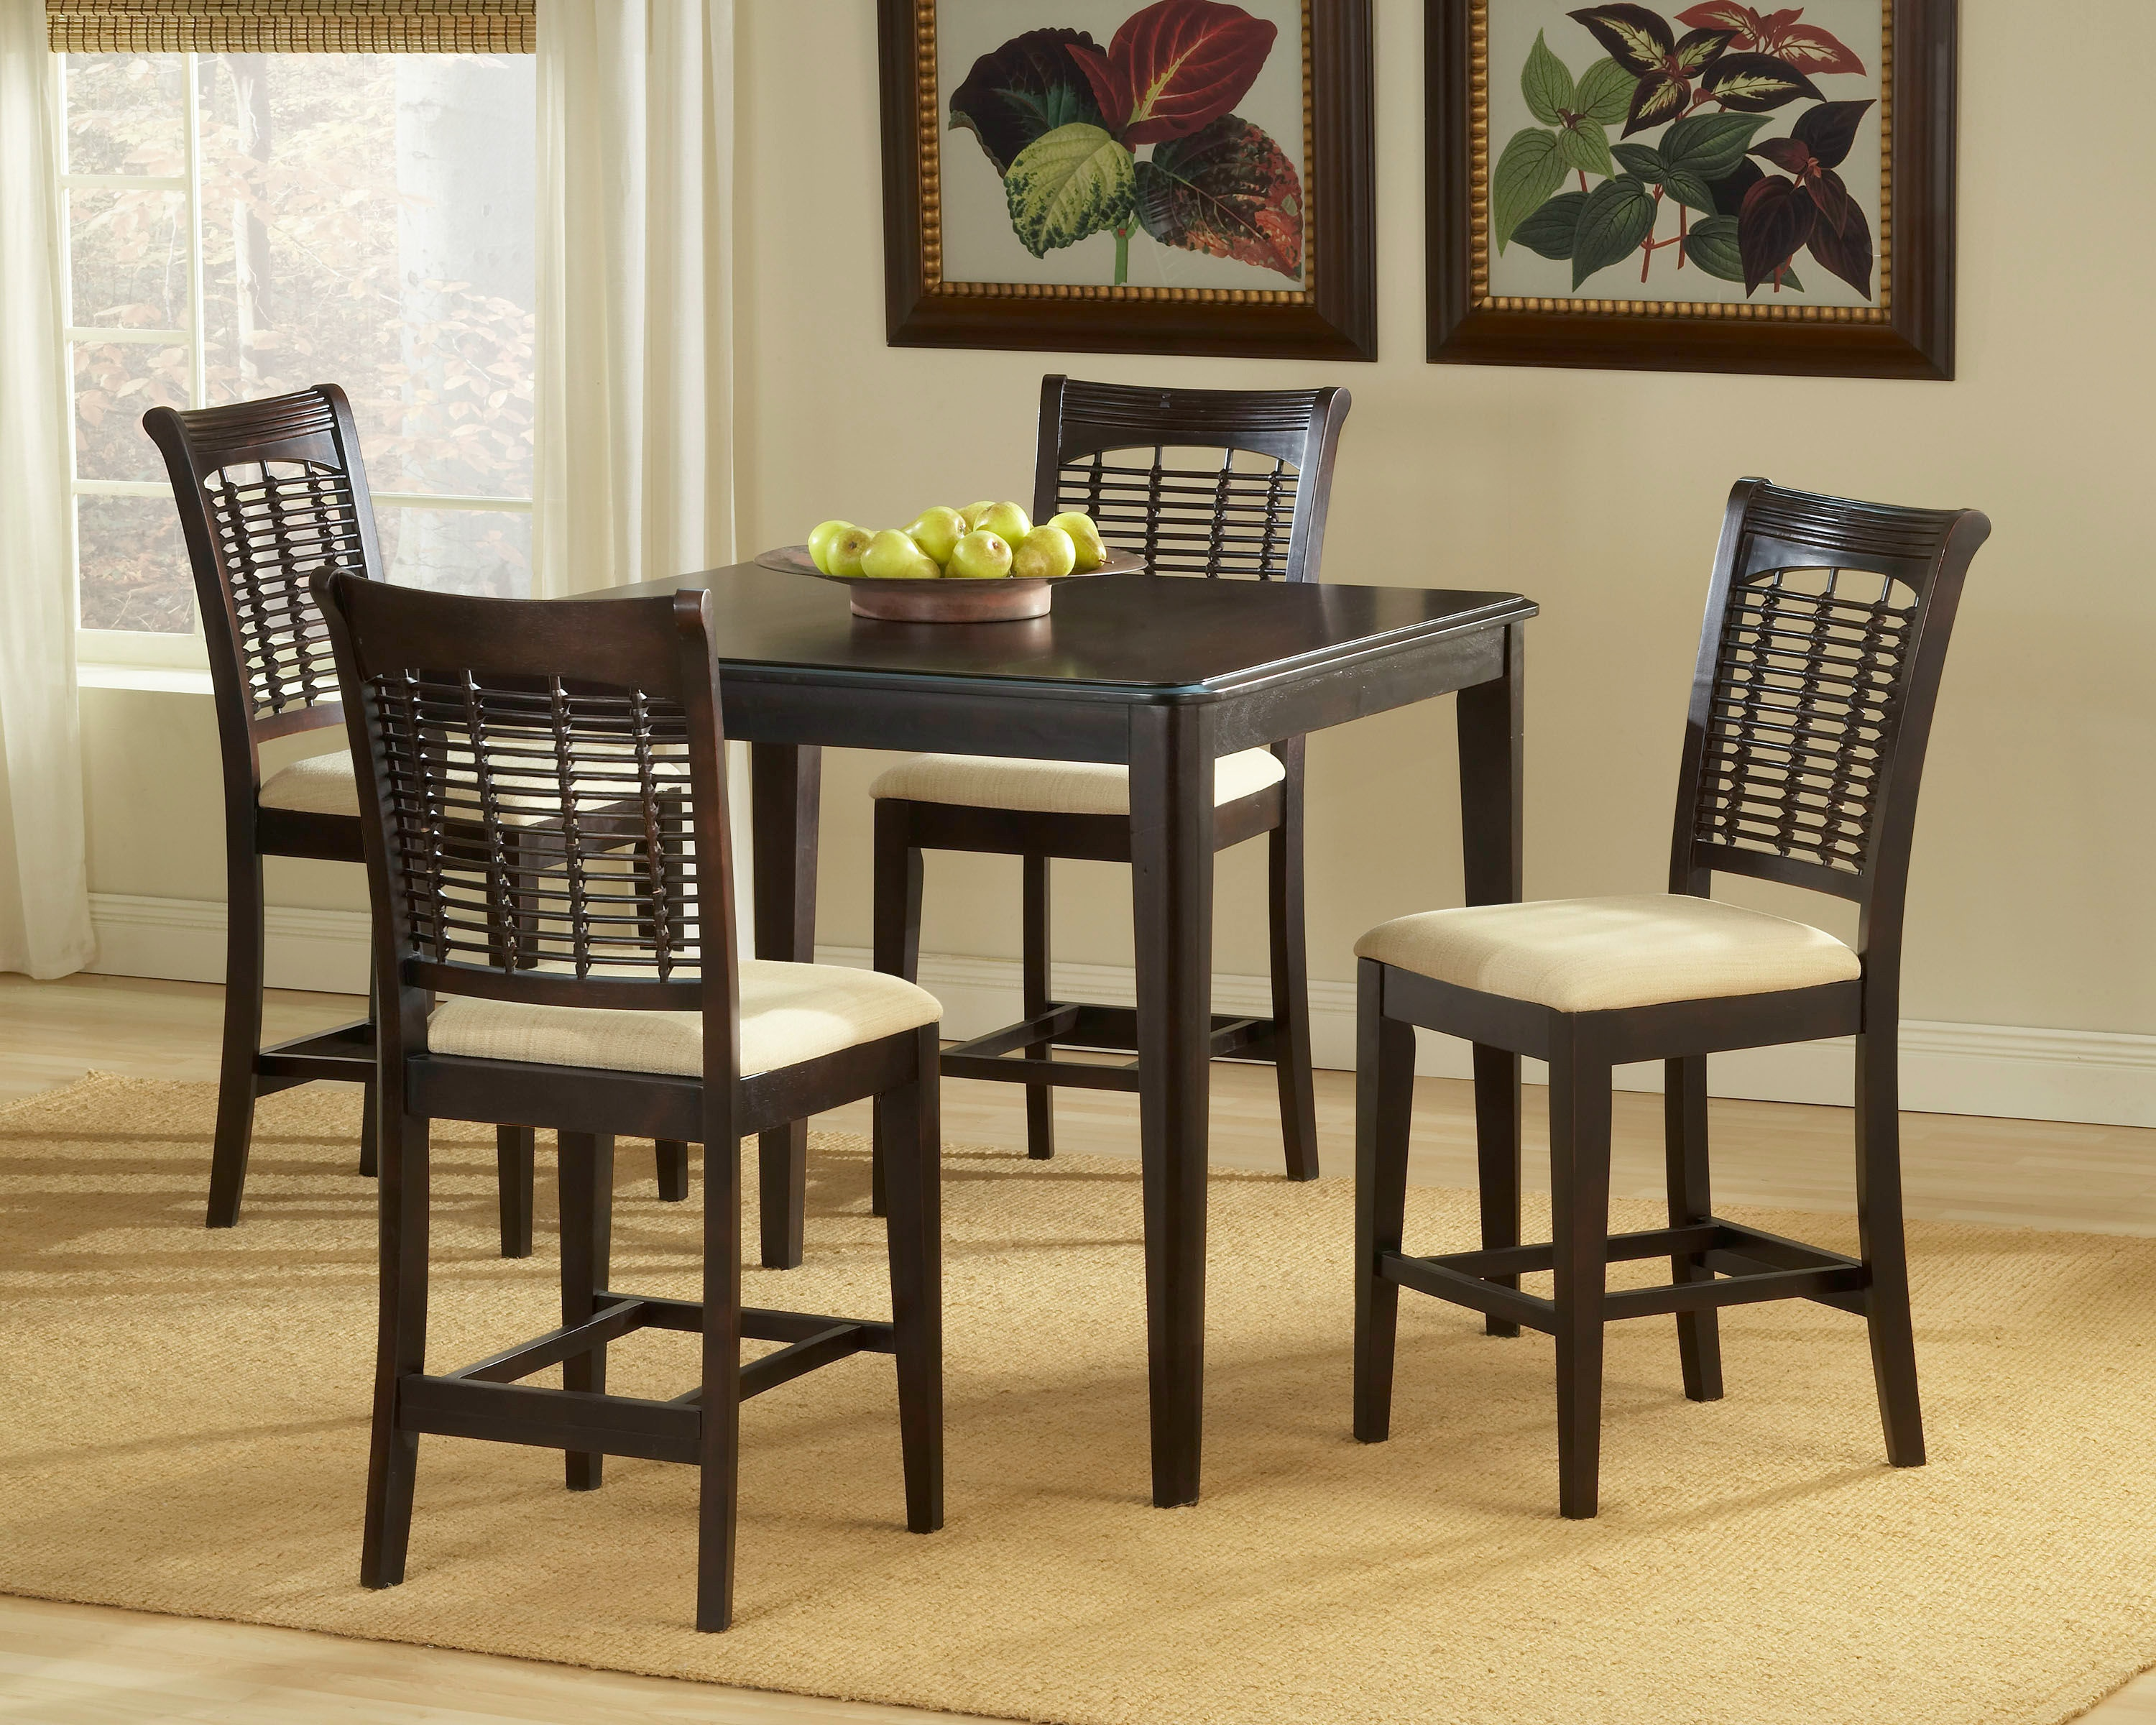 Hillsdale Furniture Bar And Game Room Bayberry 5 Piece Counter Height Dining  Set   Dark Cherry 4783DTBSG   Watts Furniture Galleries   LaGrange, GA